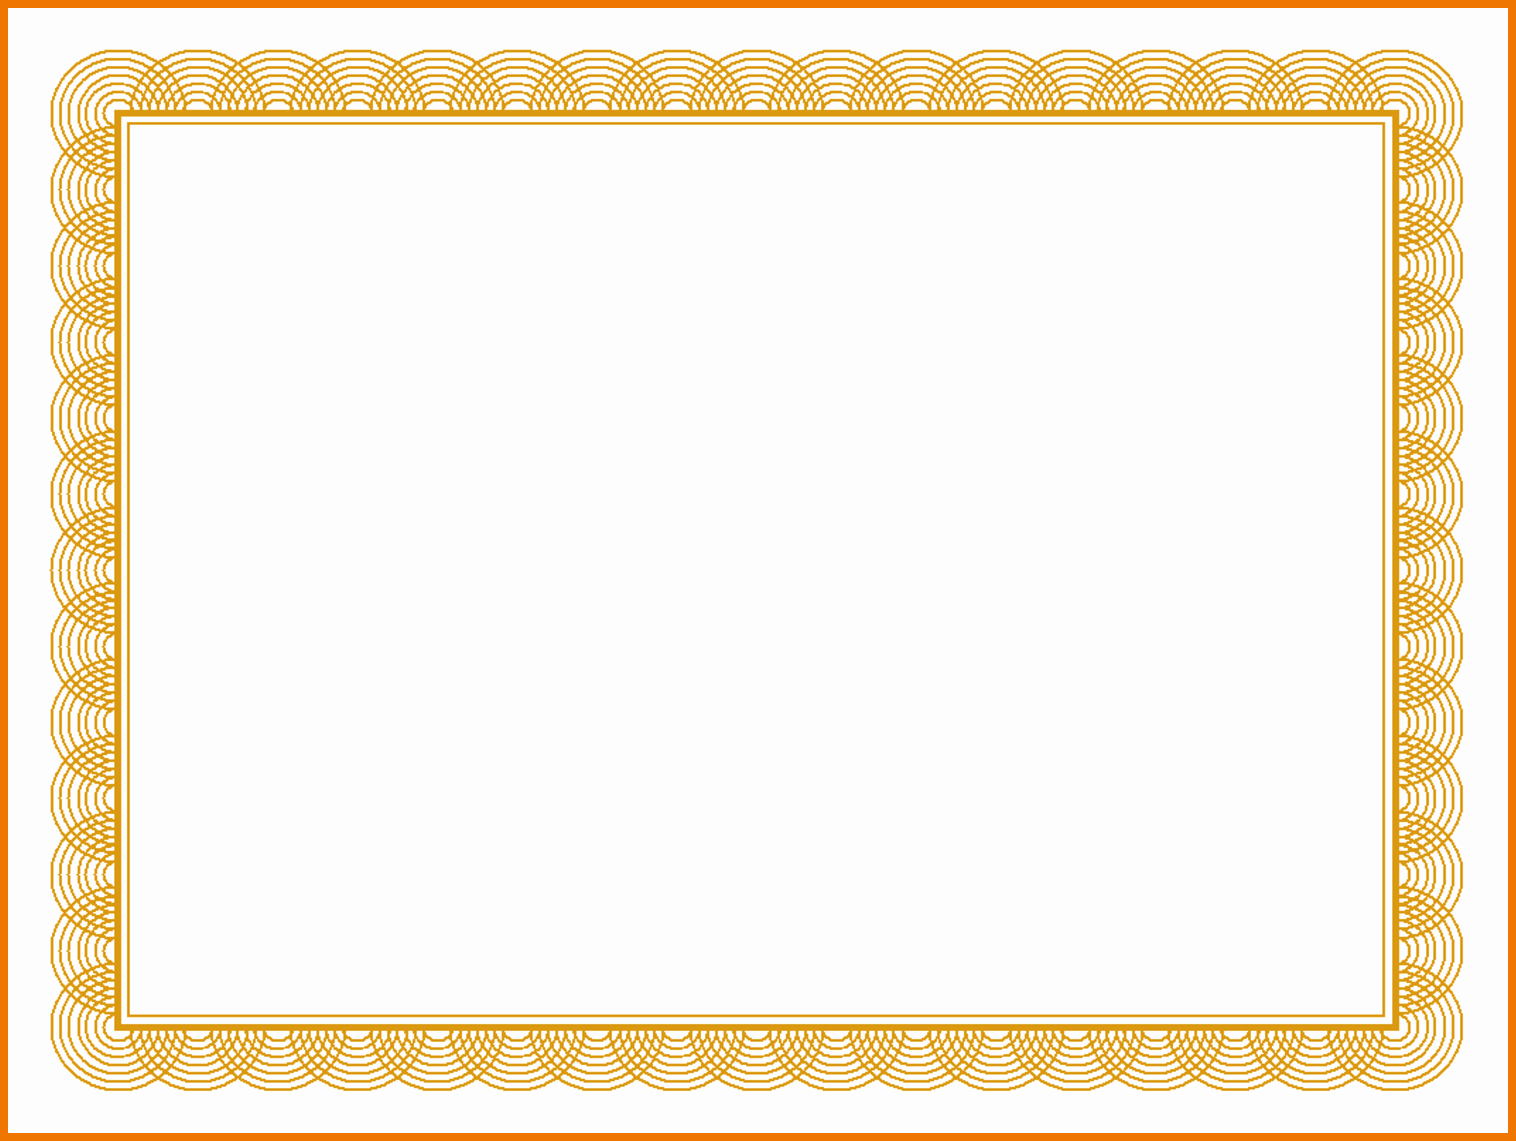 Free Gold Border Templates Lovely Gold Certificate Borders Templates Free